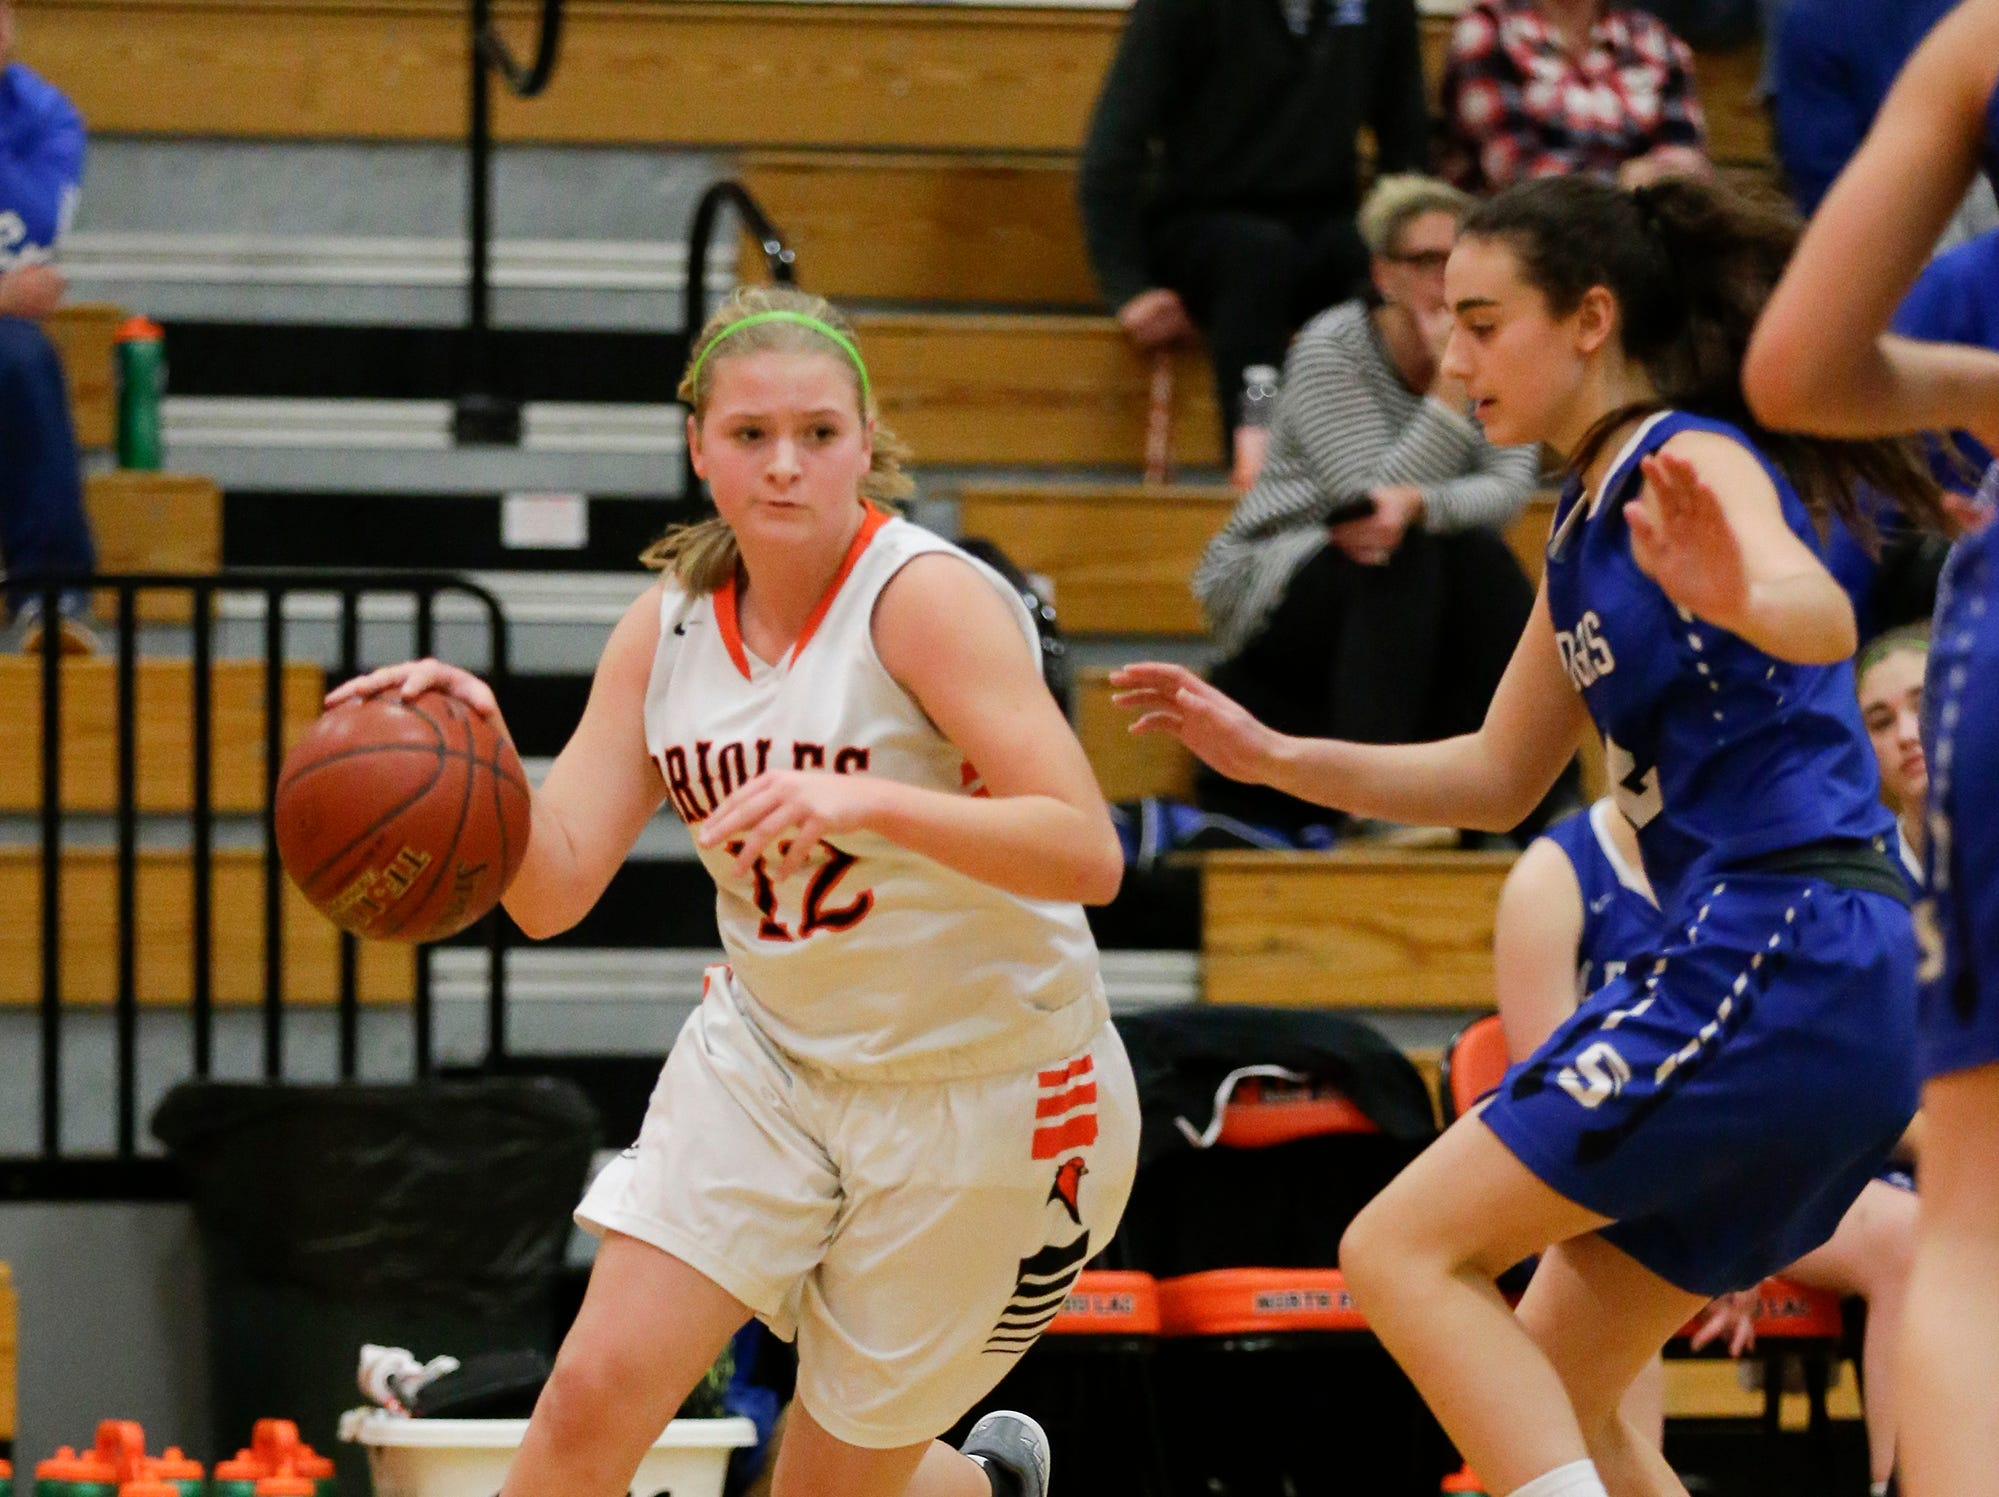 North Fond du Lac High School girls basketball's Bree Rock works her way past St. Mary's Springs Academy's Isabelle Coon during their game Friday, January 4, 2019 in North Fond du lac. Doug Raflik/USA TODAY NETWORK-Wisconsin